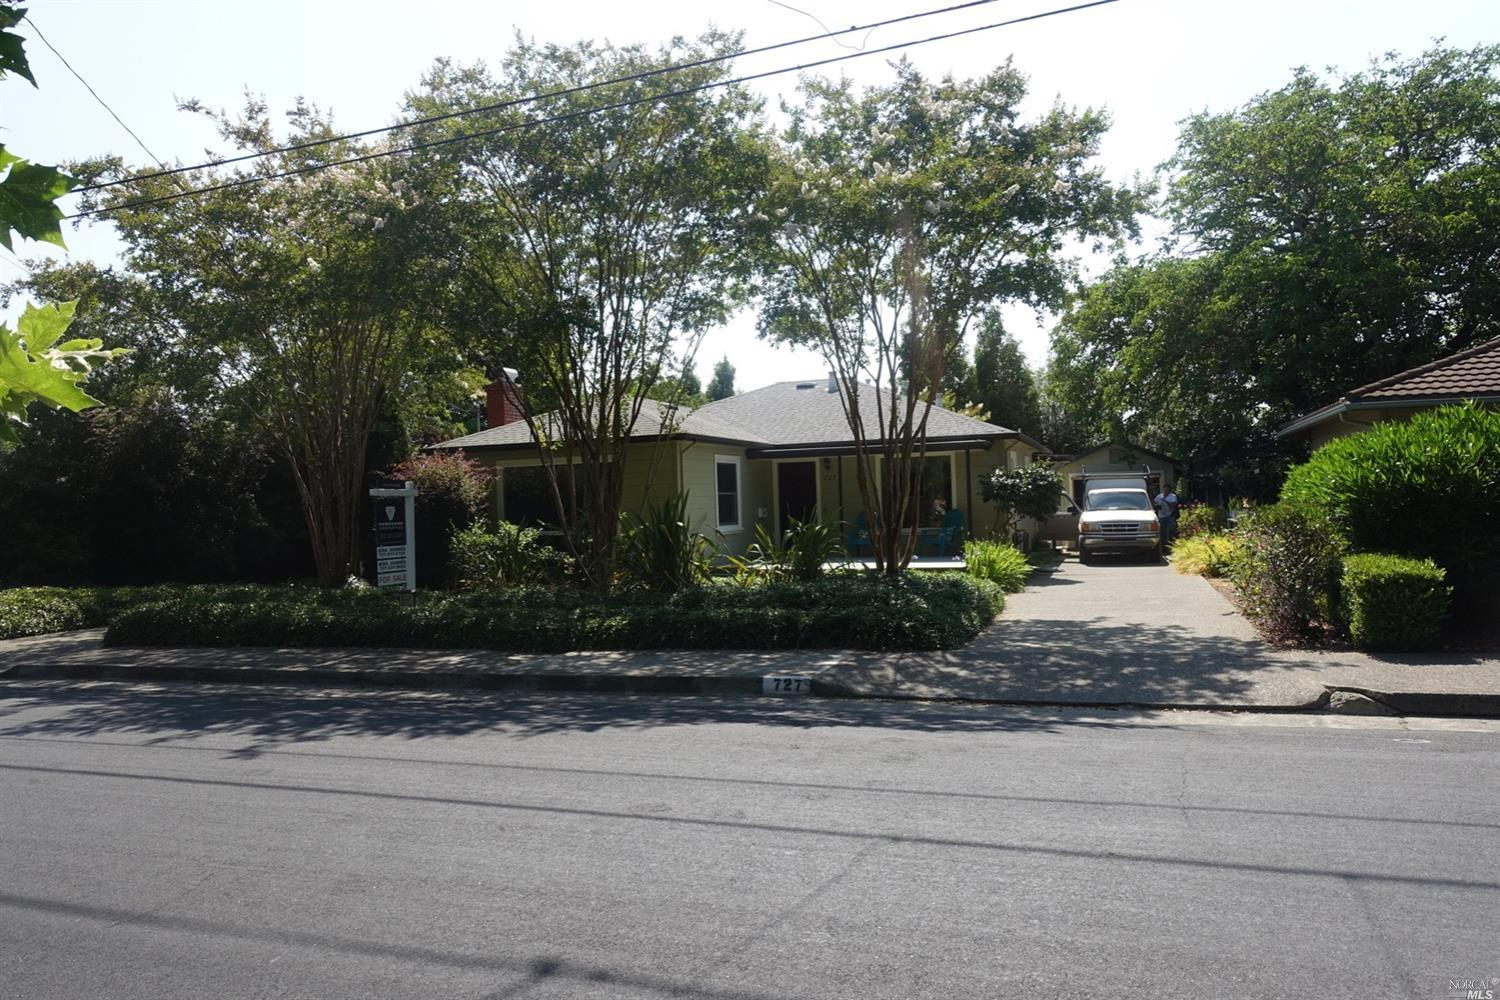 Walk to downtown and farmers market. Large landscaped lot. Hardwood floors. Fireplace. Lots of natural light.